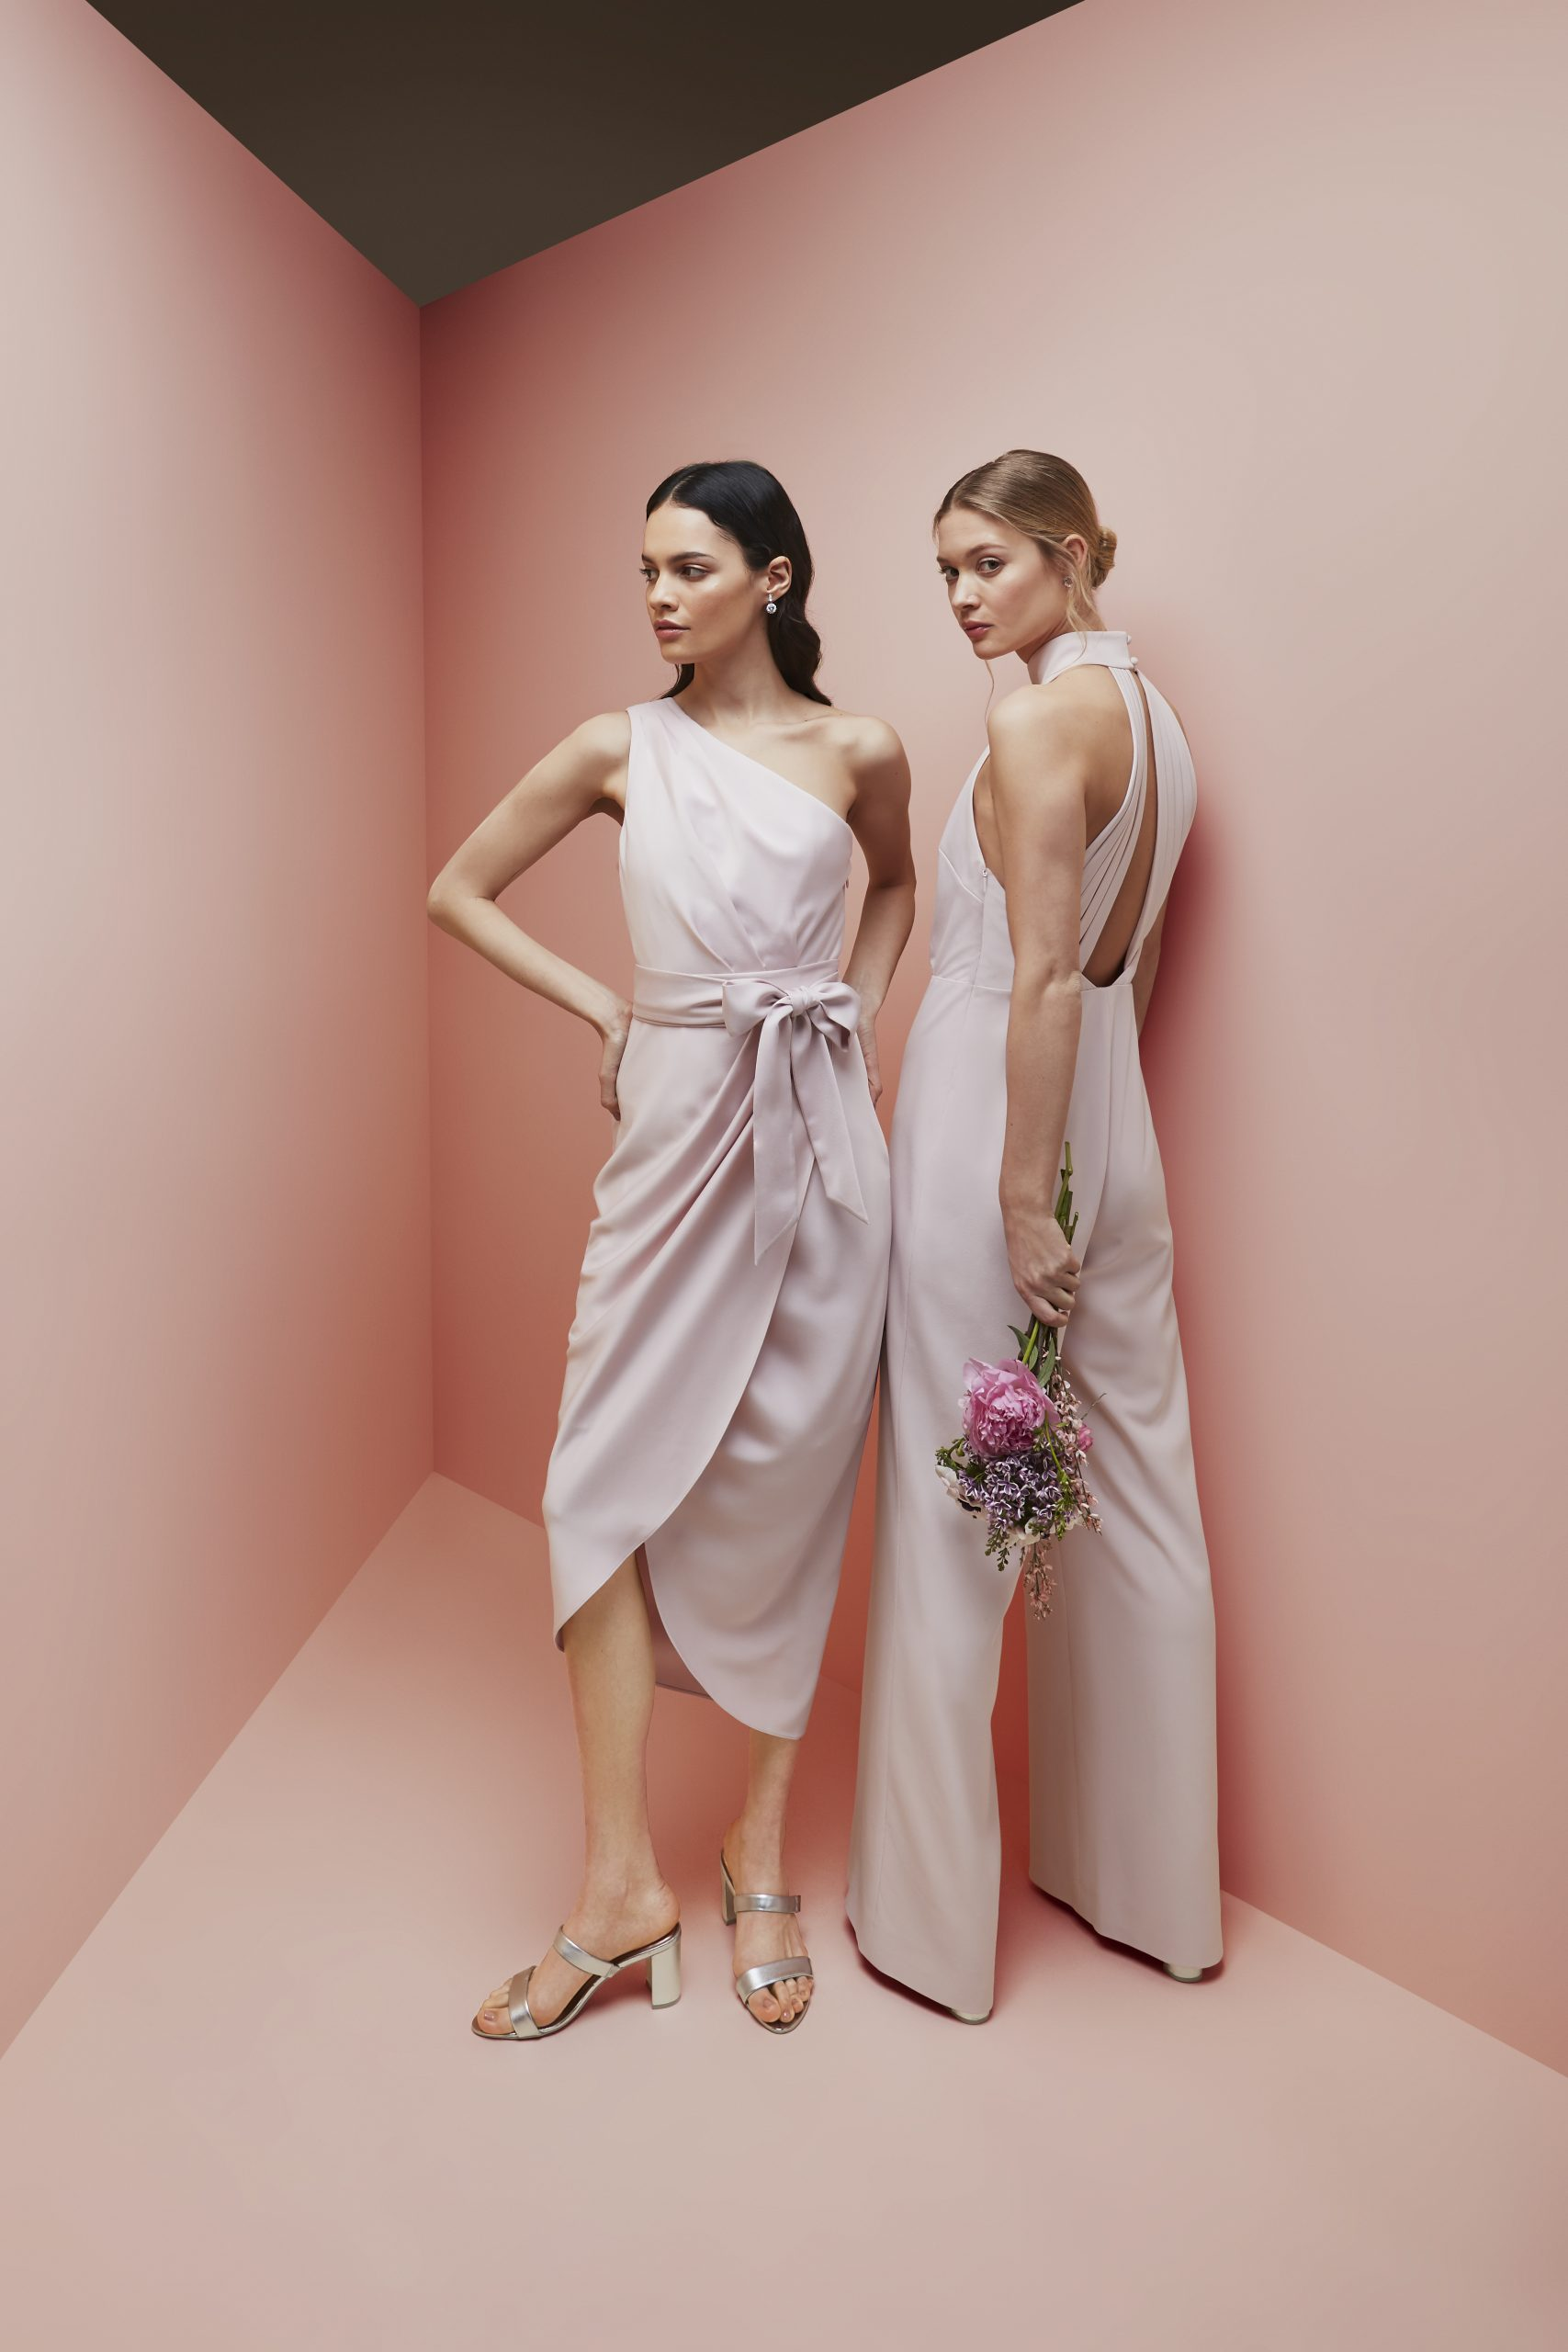 ted baker ss20 wedding outfits bridesmaid dresses